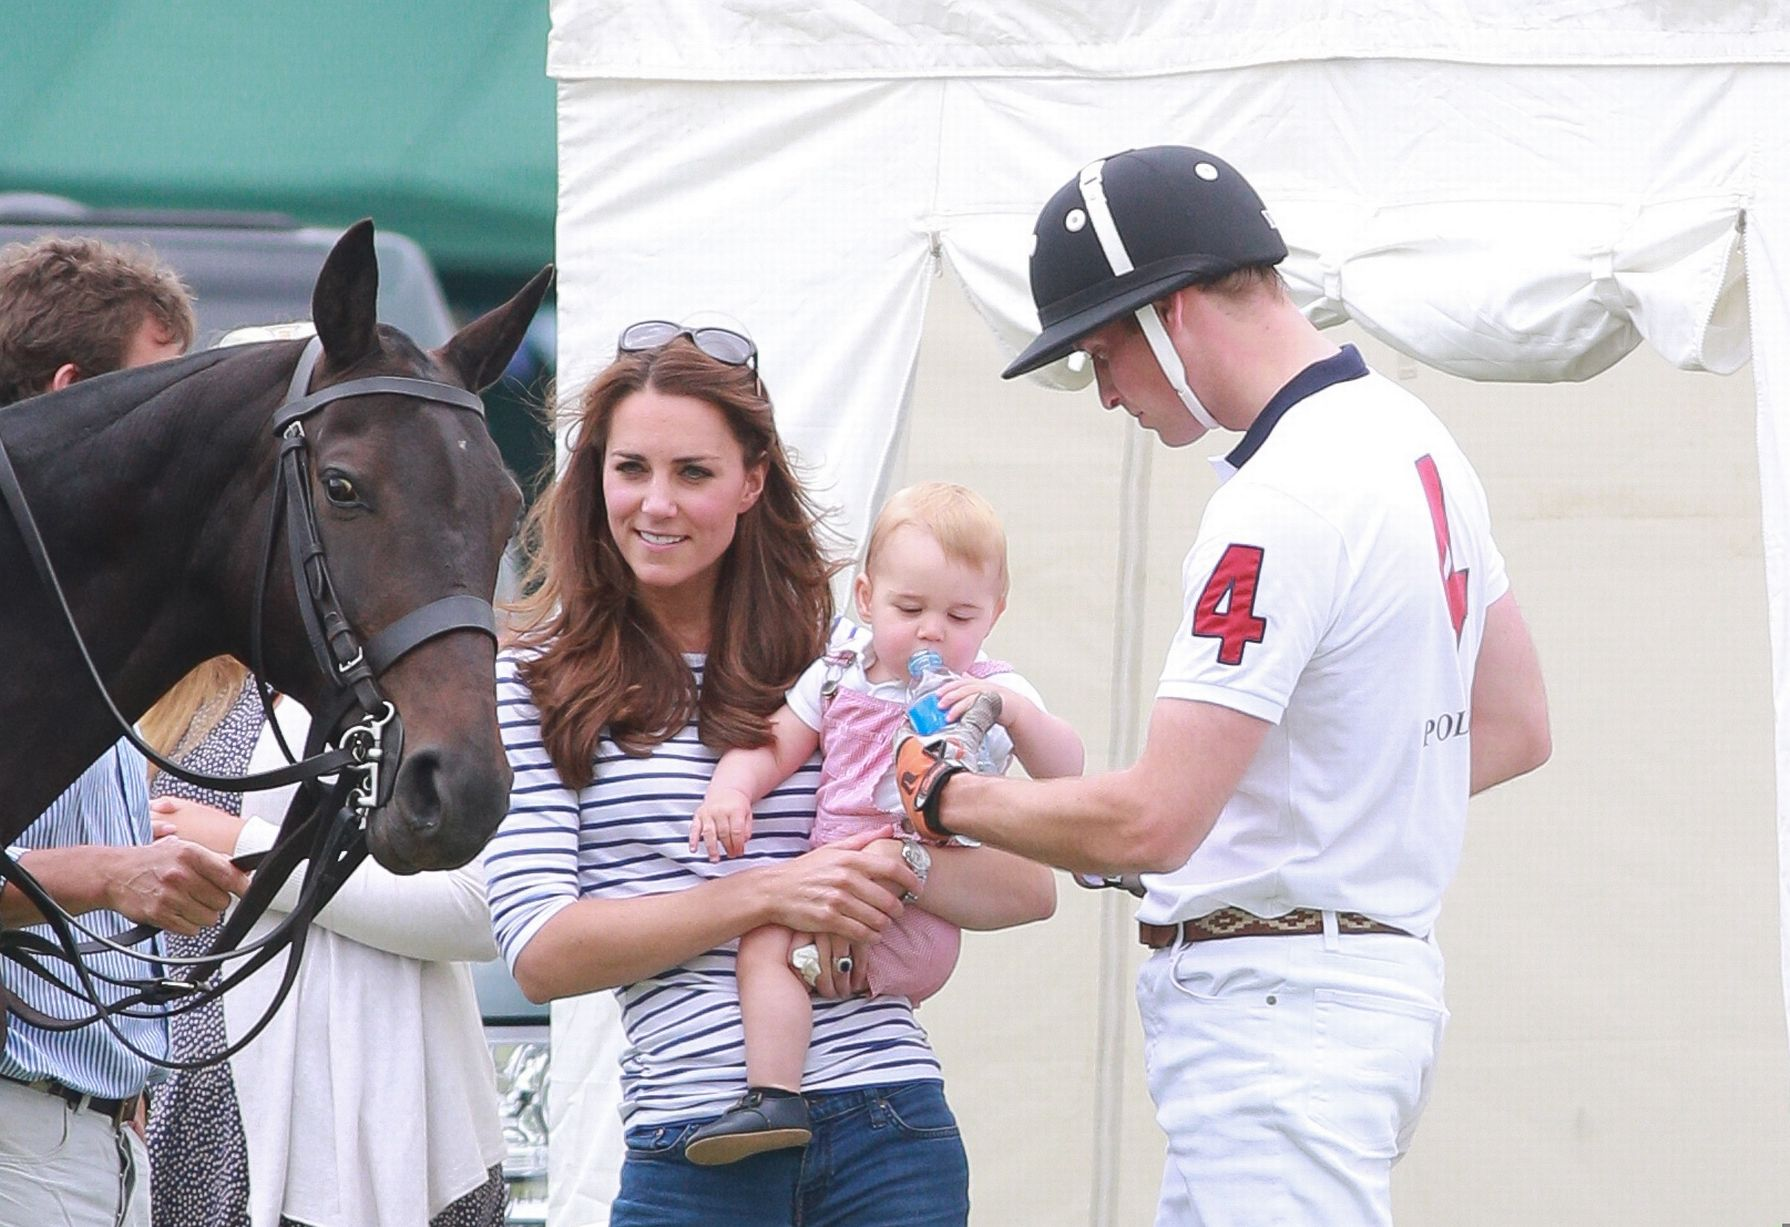 PAY-Kate-Middleton-Prince-George-and-Prince-William